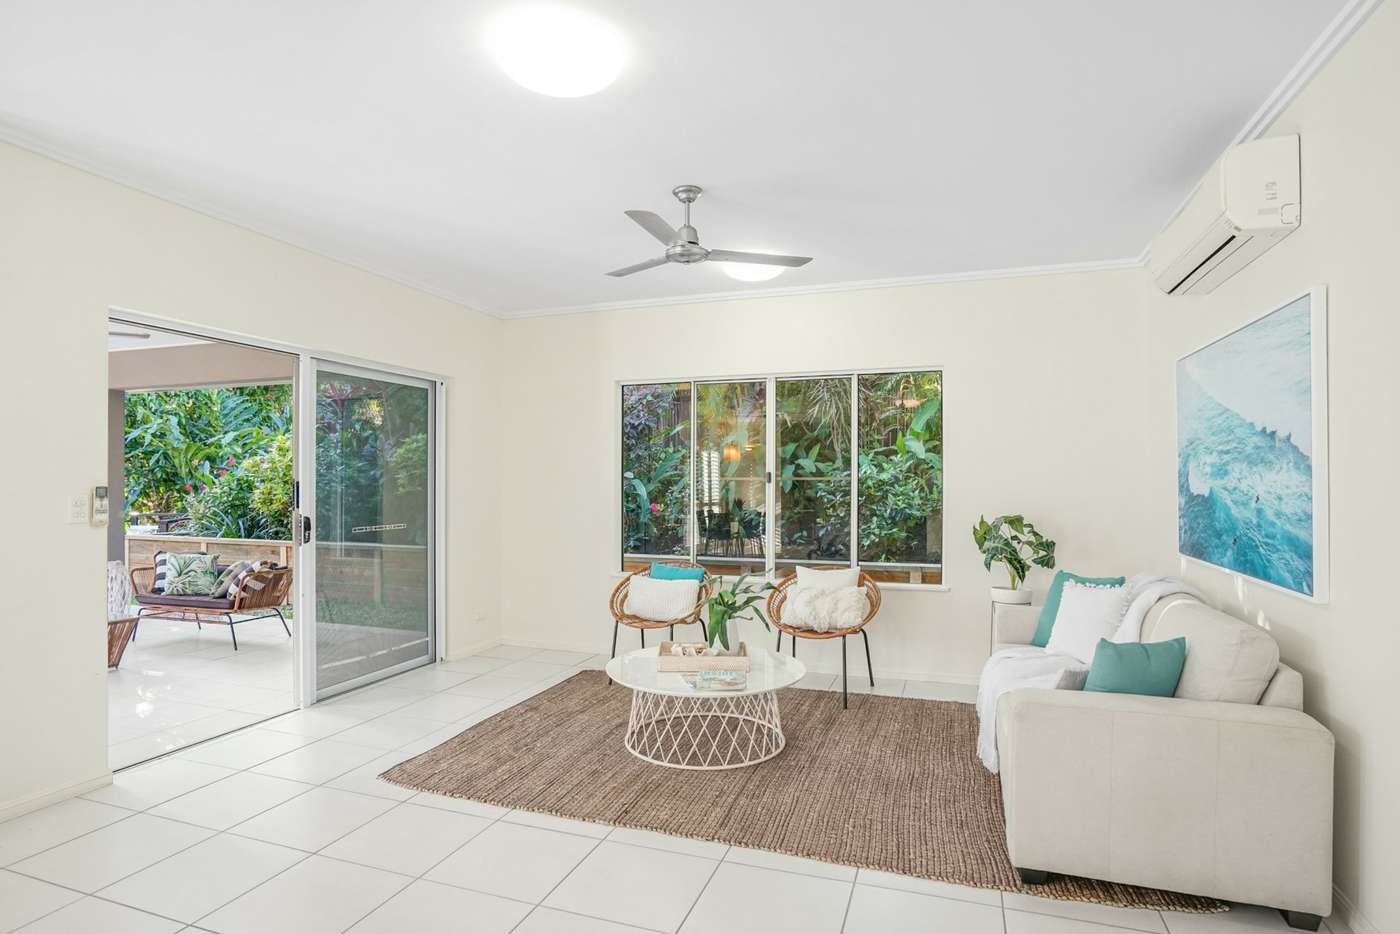 Sixth view of Homely house listing, 3 Findlay Street, Brinsmead QLD 4870